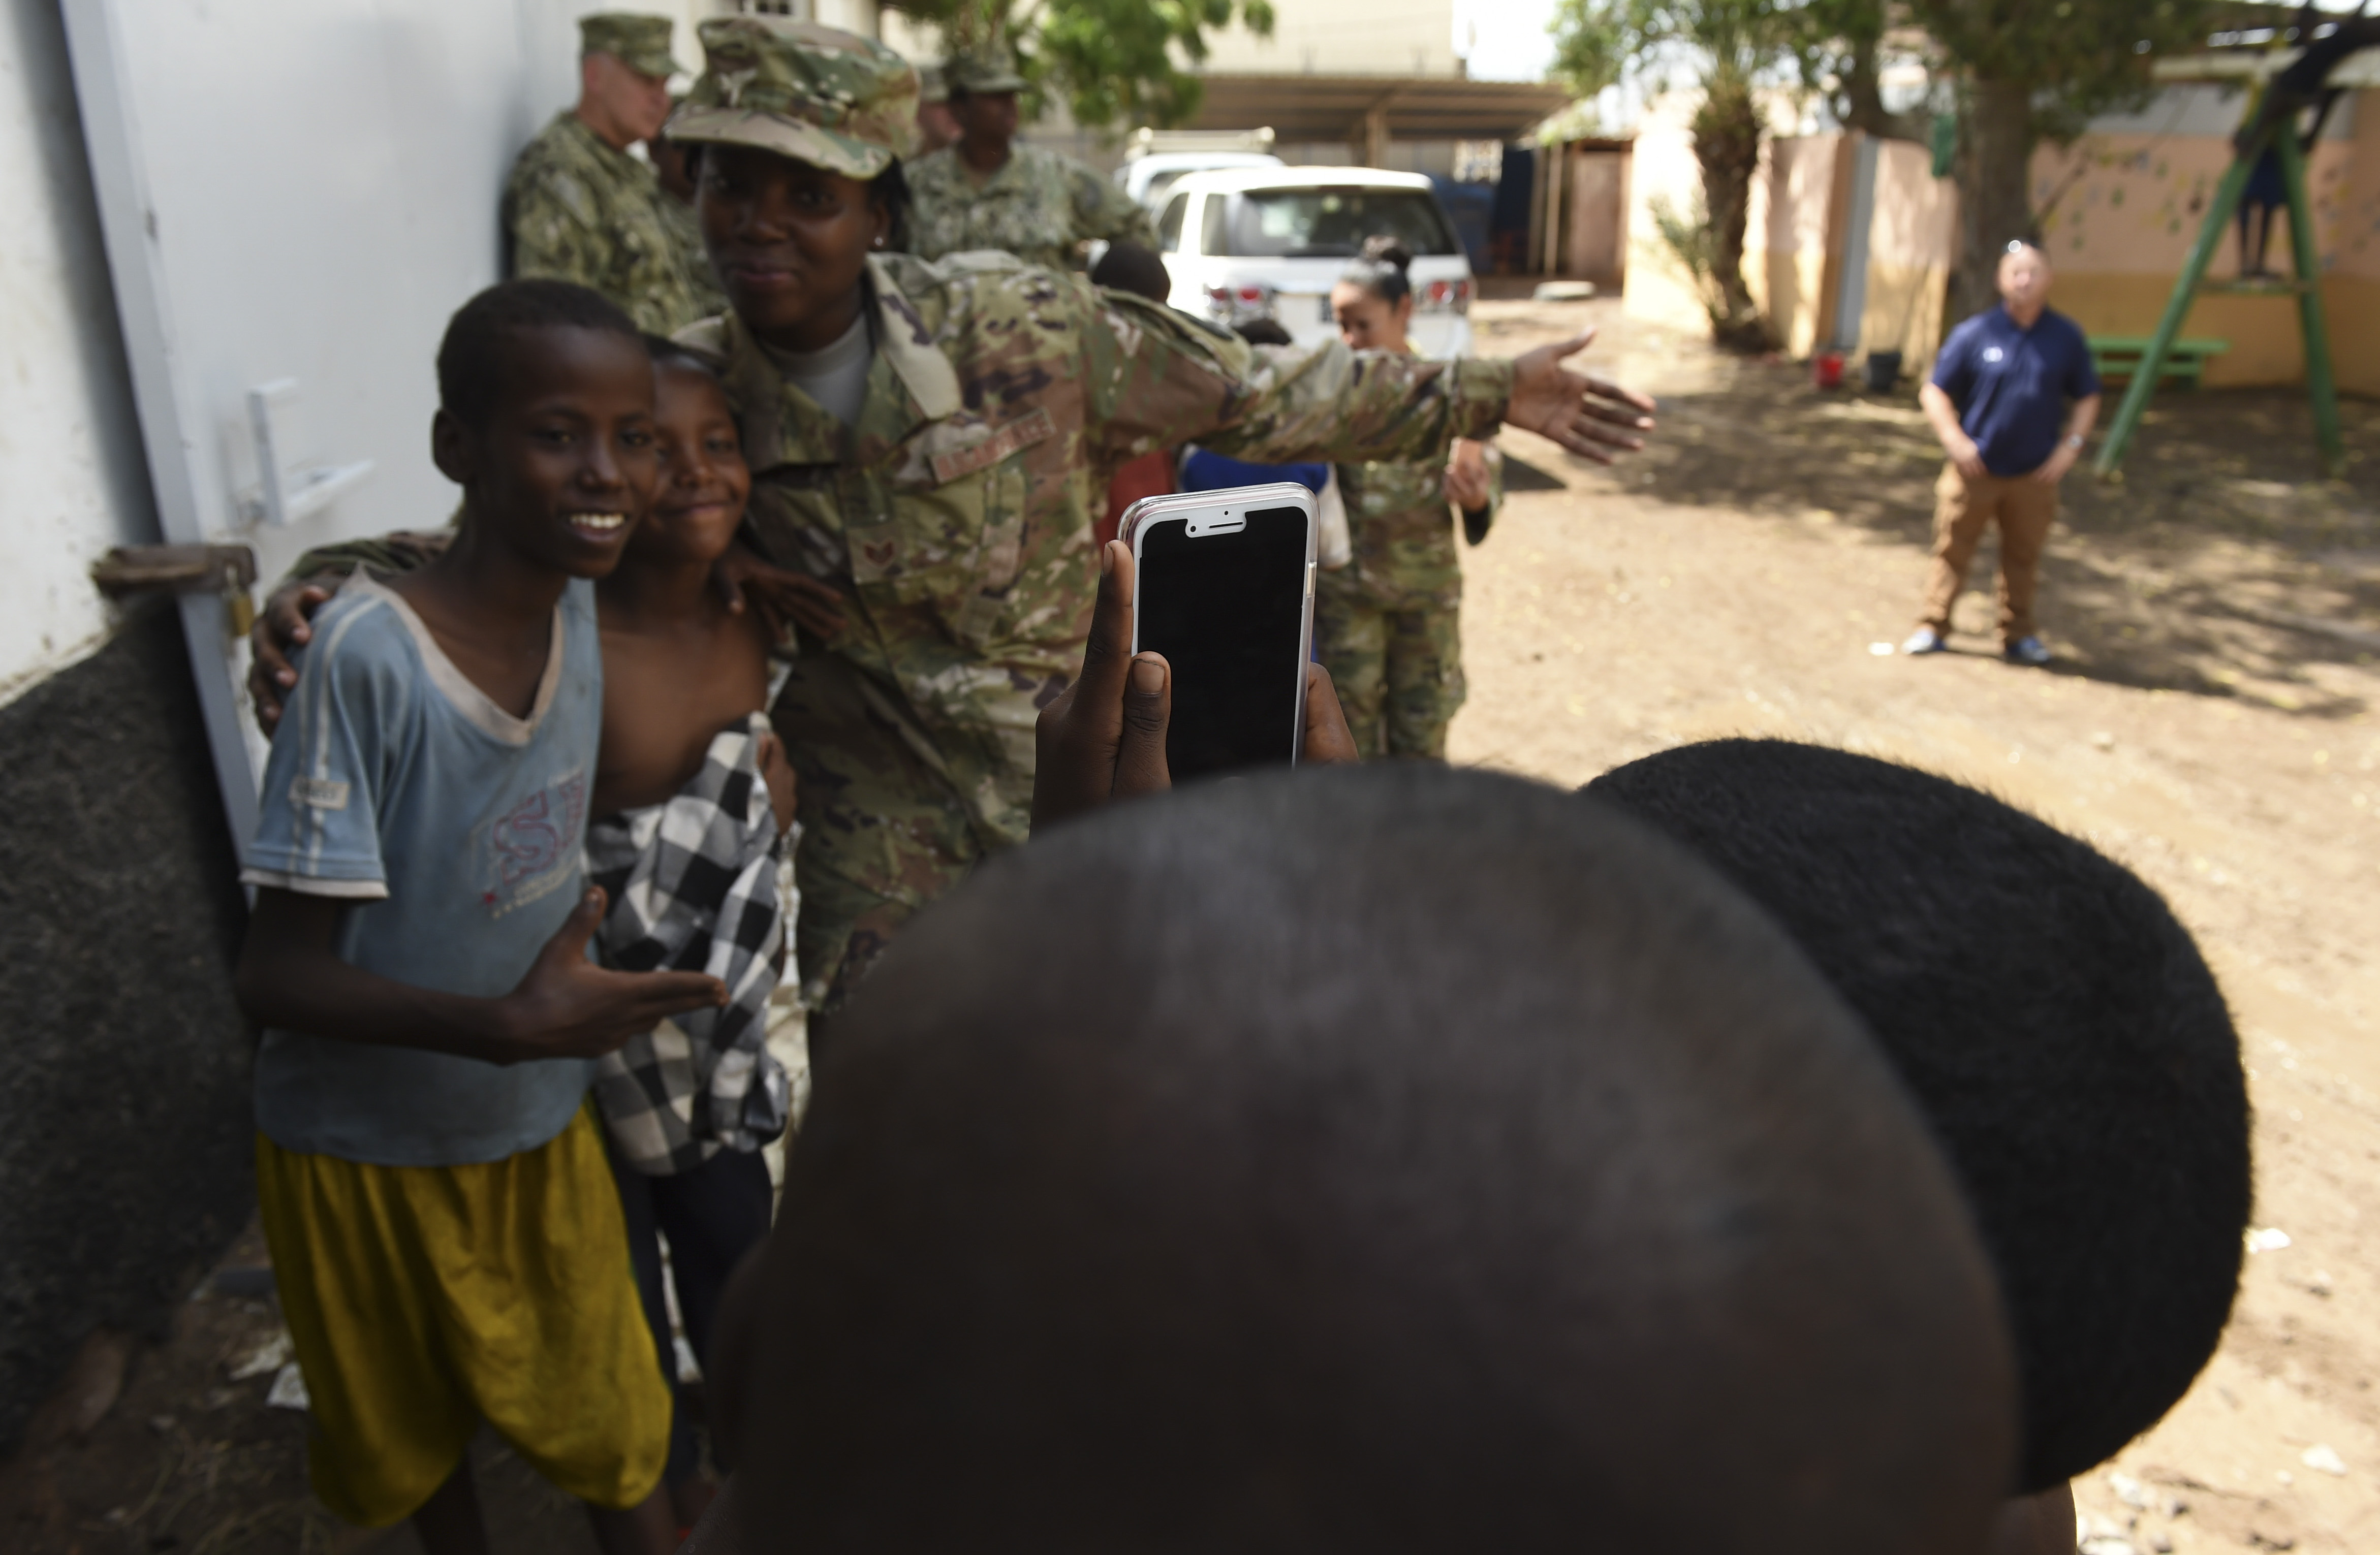 A child takes a photo of U.S. Air Force Staff Sgt. Grace Henderson posing with other children from Caritas Djibouti in downtown Djibouti, May 16, 2017. Henderson was one of more than 20 service members from Camp Lemonnier to visit Caritas Djibouti as part of an ongoing initiative to build partnerships with local religious leaders and humanitarian organizations. (U.S. Air Force photo by Eboni Prince)